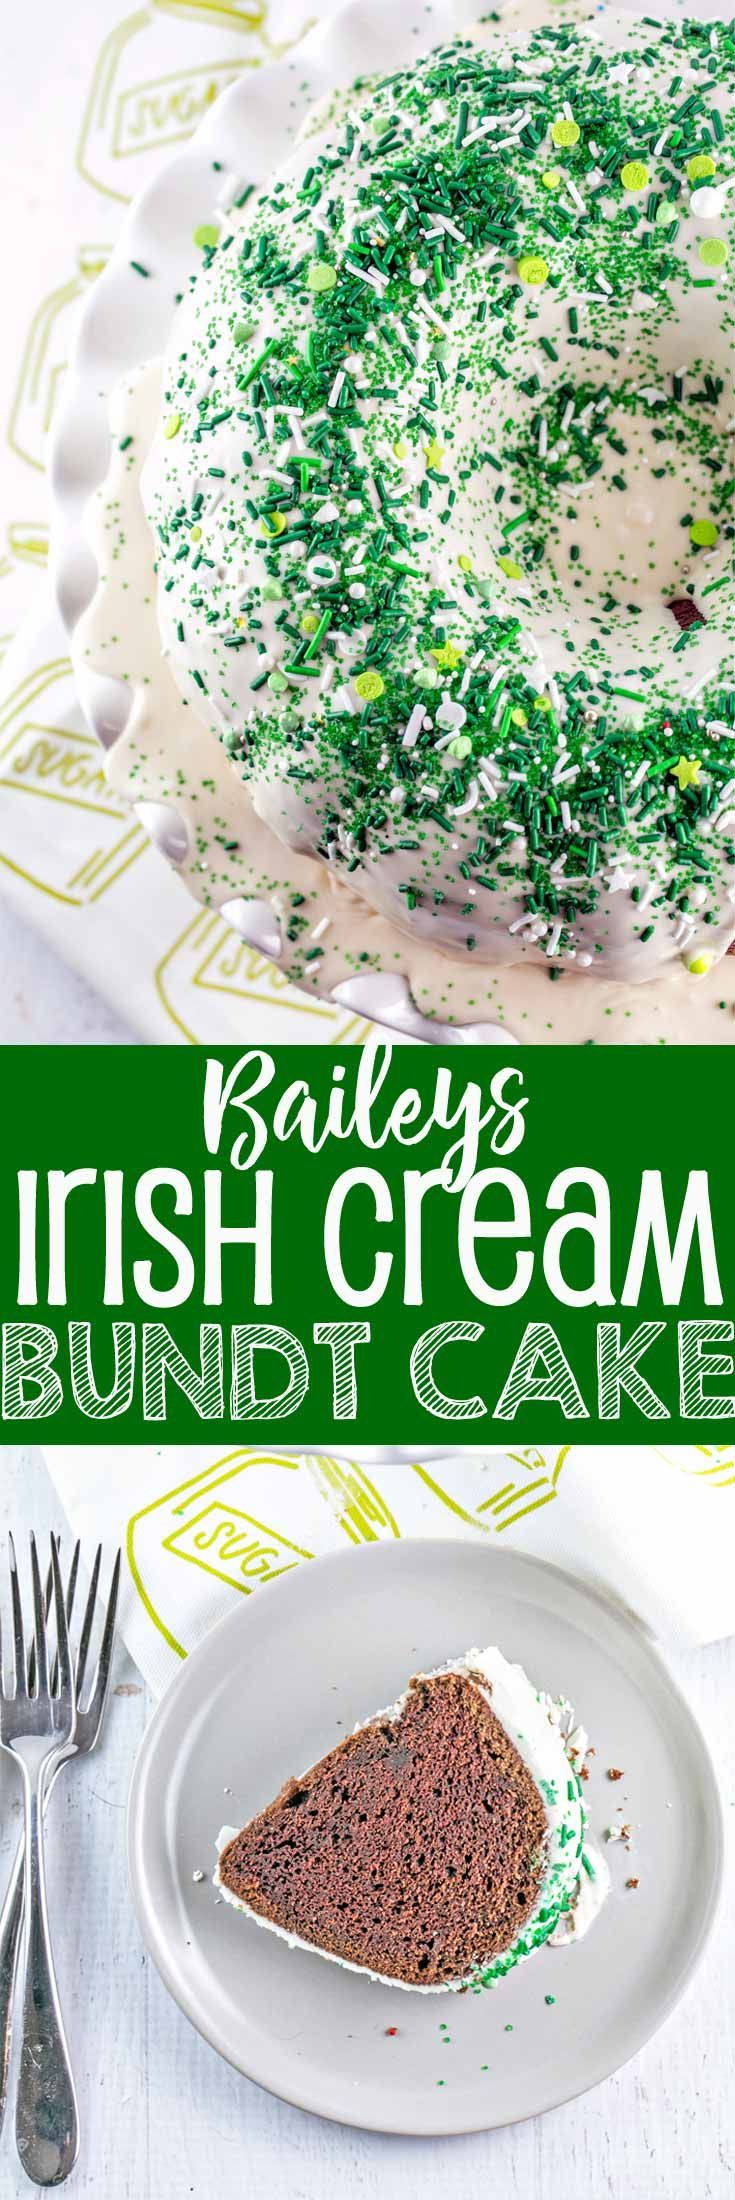 Irish Cream Bundt Cake: an easy, rich chocolate bundt cake covered with an Irish cream glaze - this one bowl cake is perfect for holiday entertaining, especially St. Patrick's Day! {Bunsen Burner Bakery} via @bnsnbrnrbakery